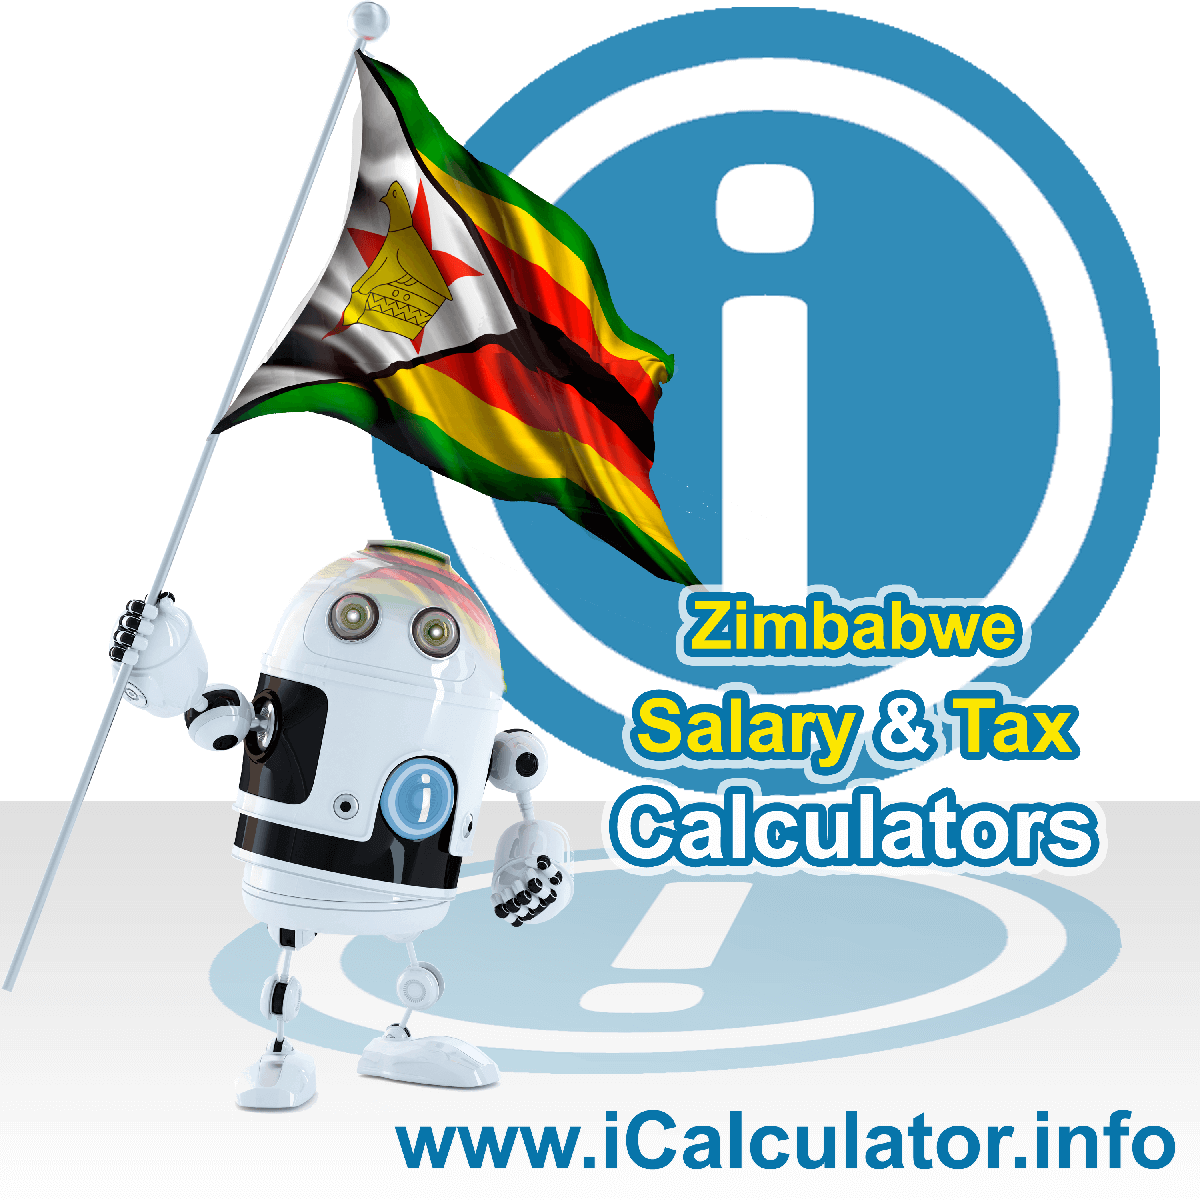 Zimbabwe Tax Calculator. This image shows the Zimbabwe flag and information relating to the tax formula for the Zimbabwe Salary Calculator